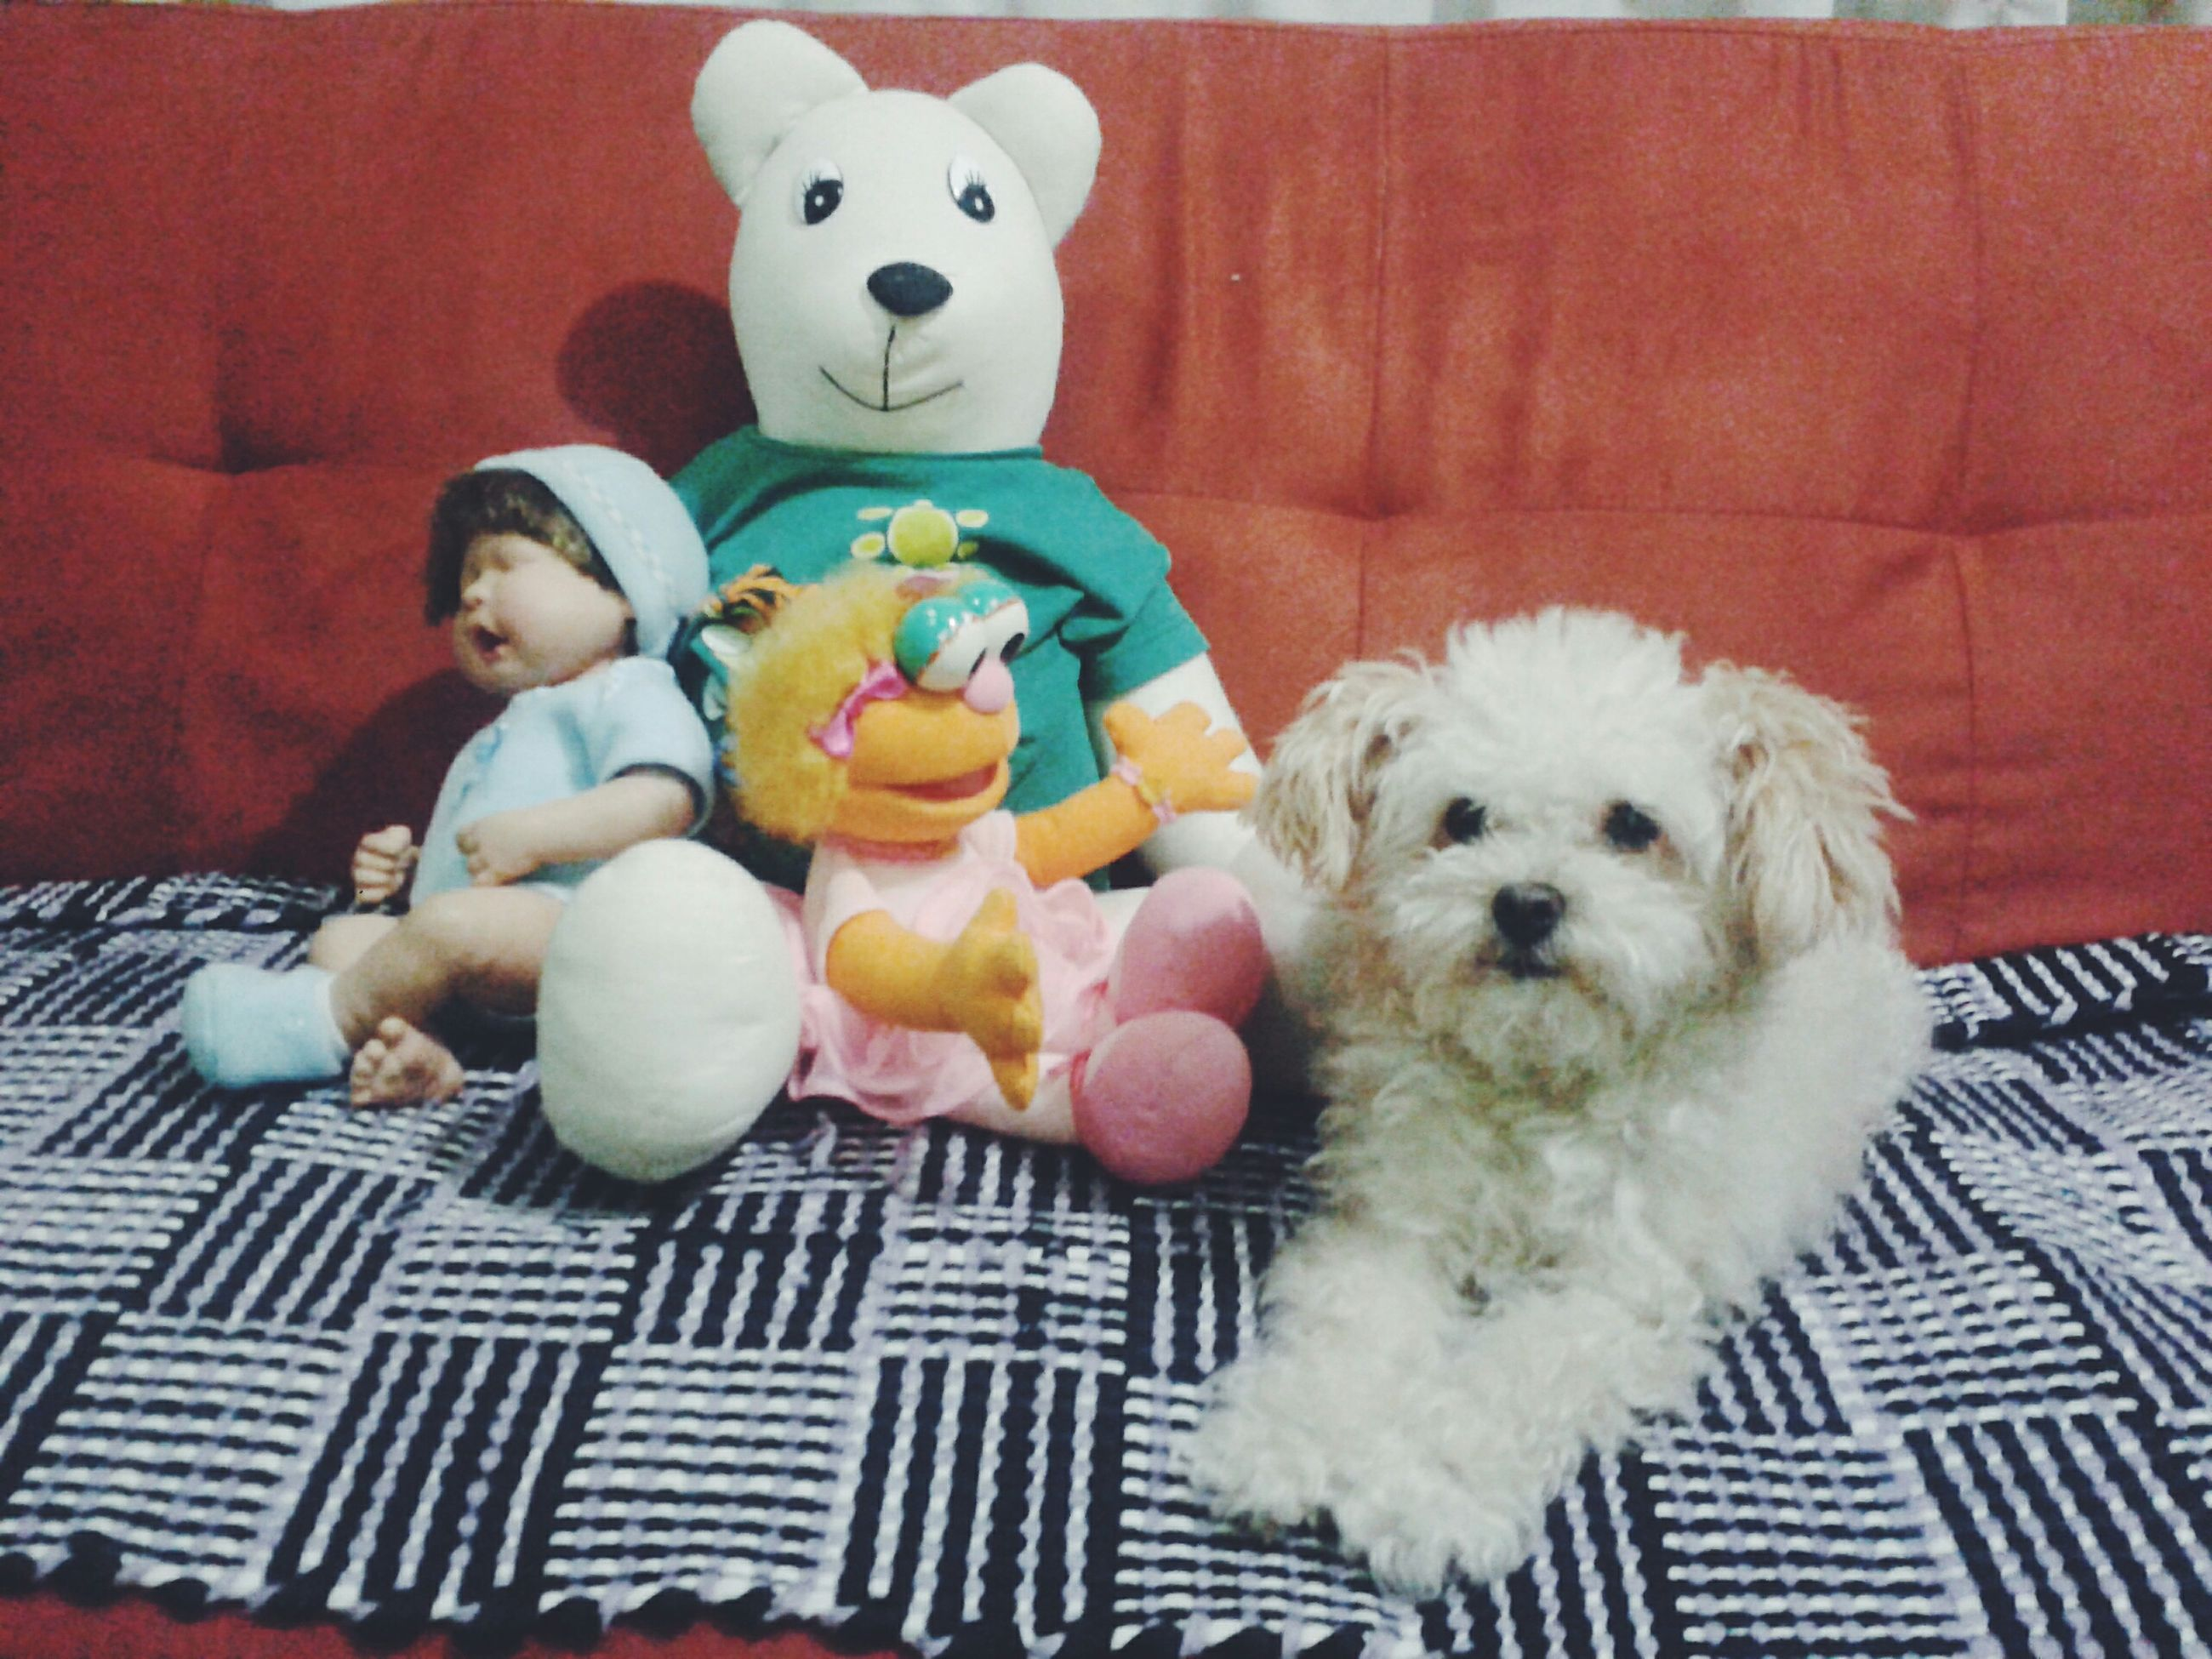 pets, indoors, animal themes, domestic animals, dog, portrait, looking at camera, toy, cute, stuffed toy, mammal, one animal, animal representation, home interior, white color, teddy bear, front view, humor, red, togetherness